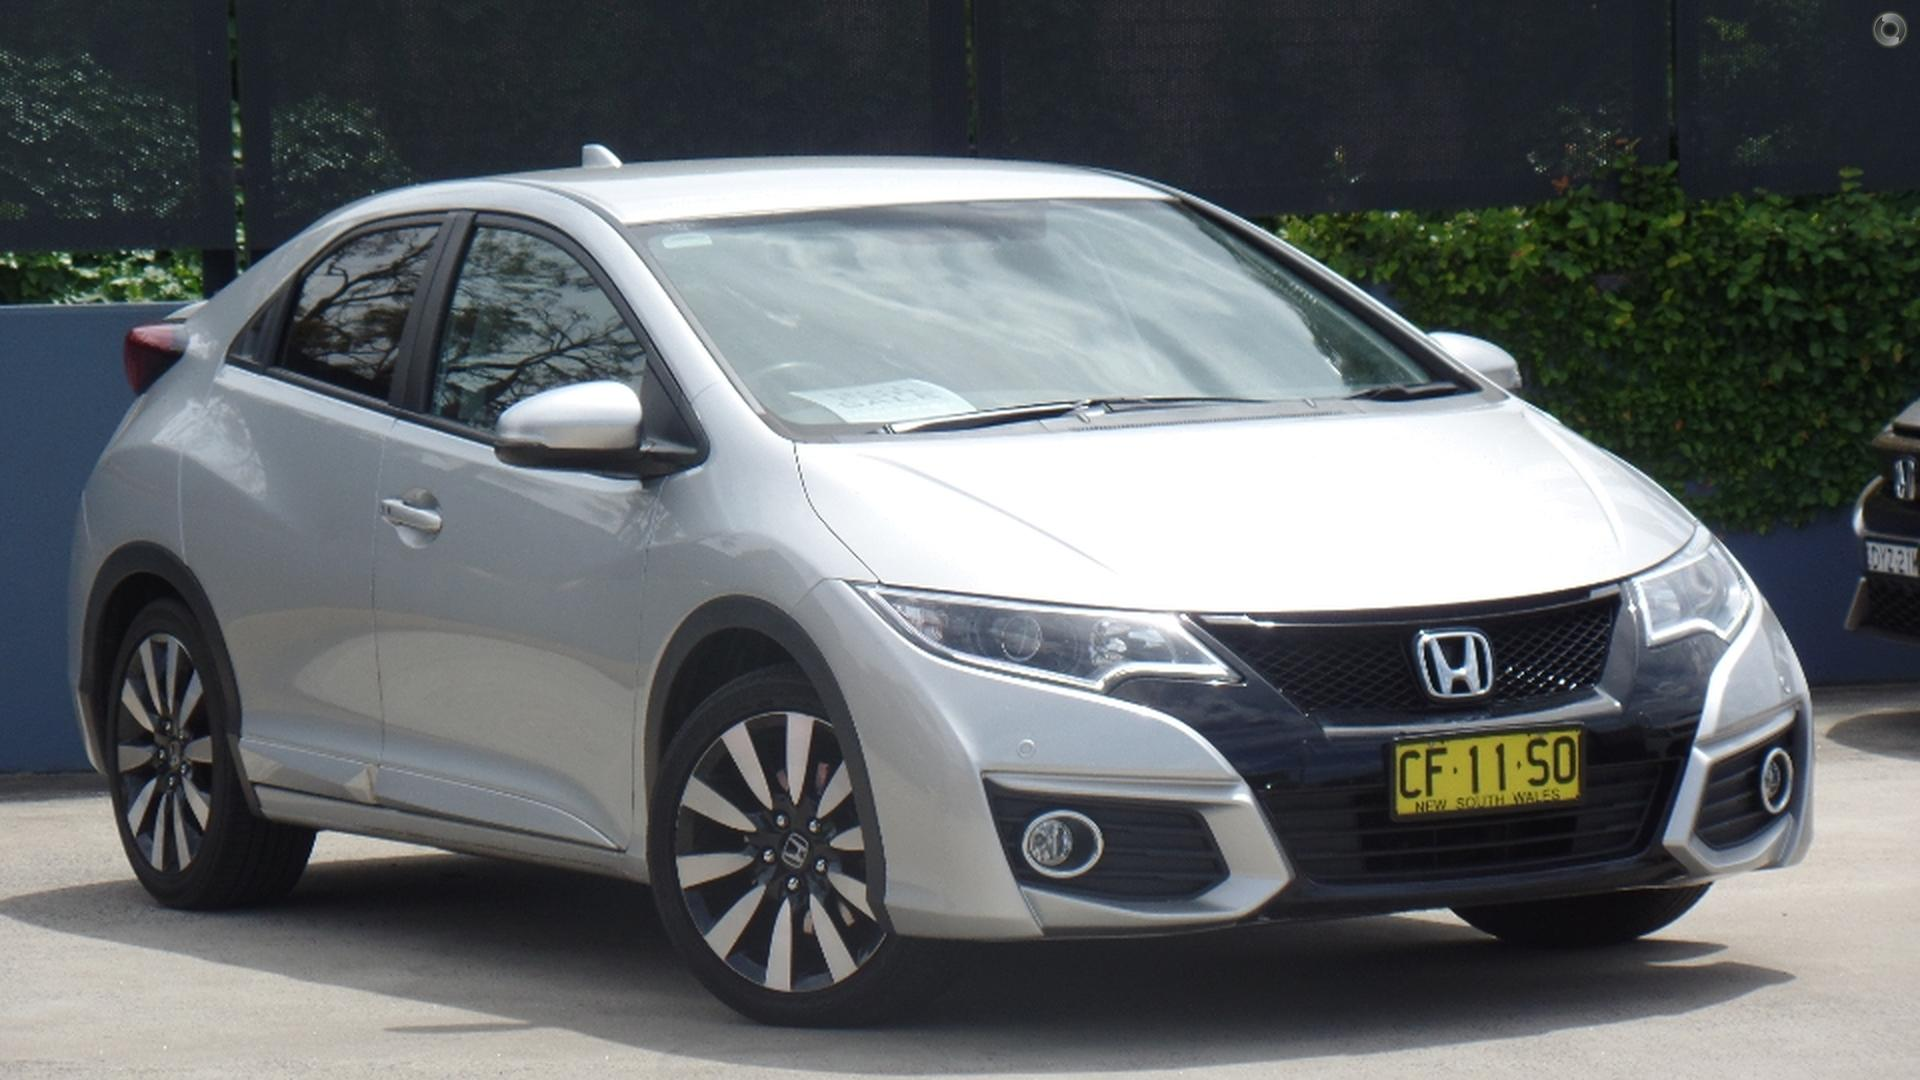 2015 Honda Civic 9th Gen